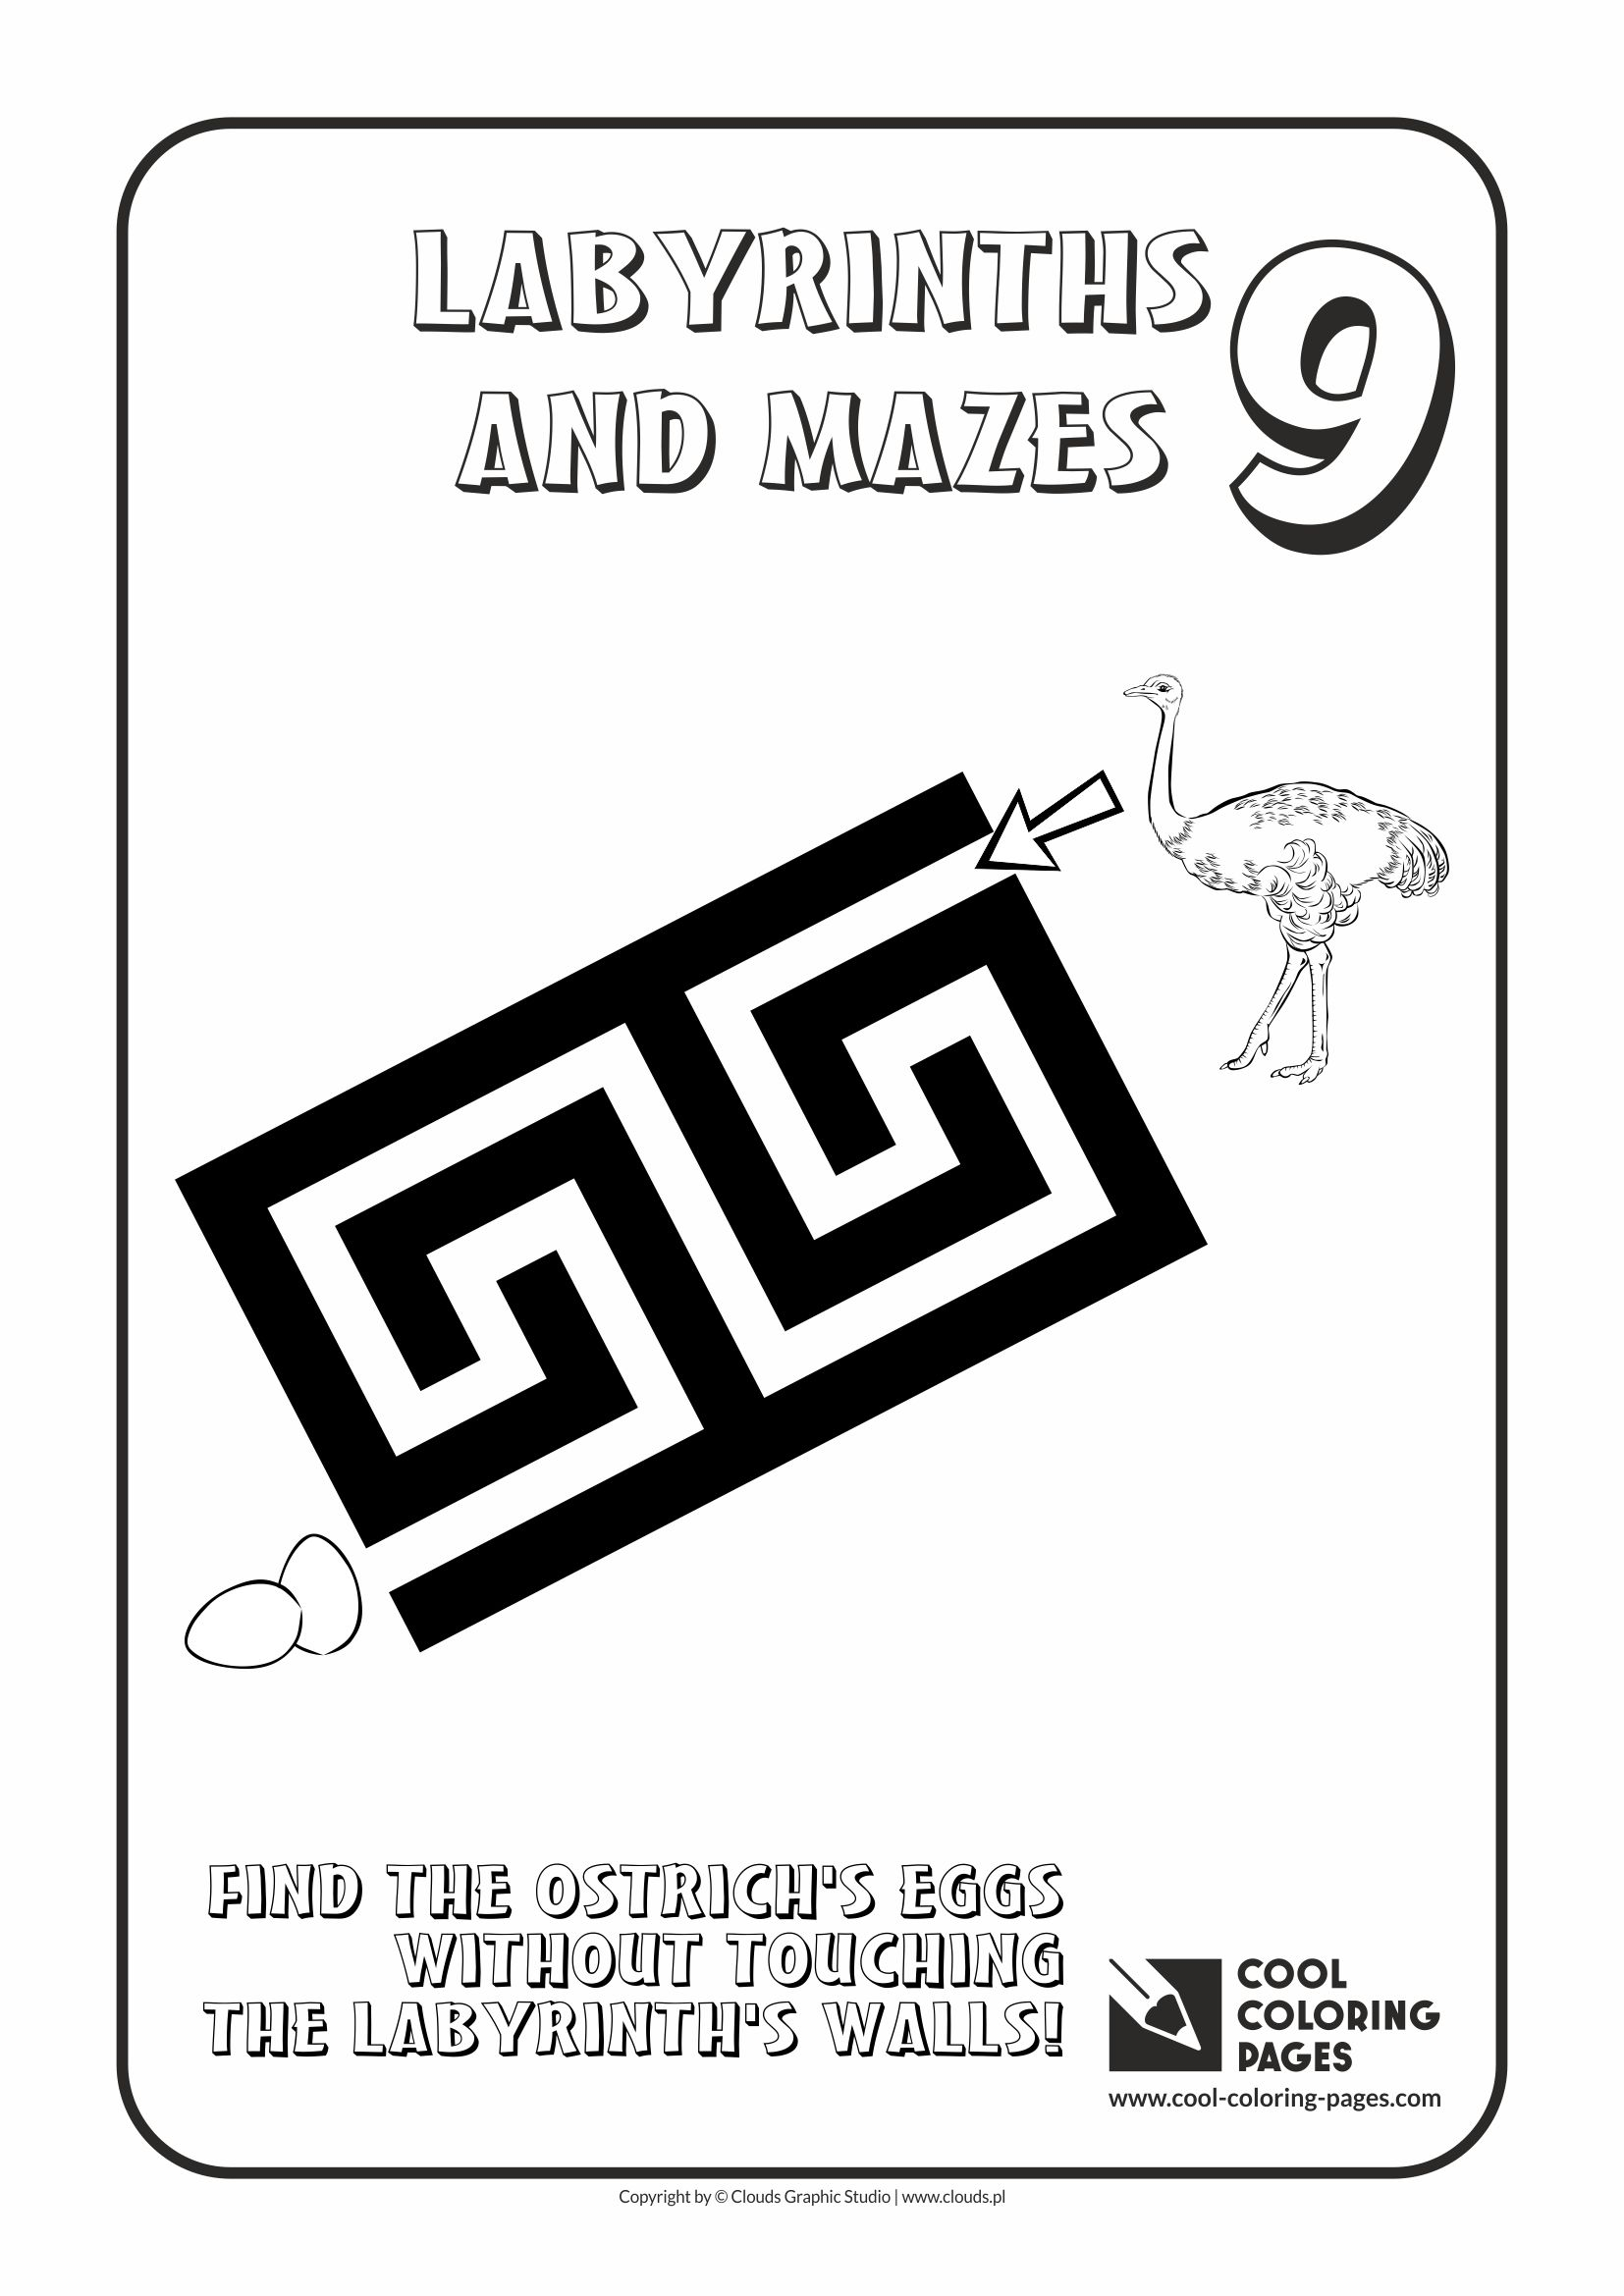 Cool Coloring Pages - Labyrinths and mazes / Maze no 9